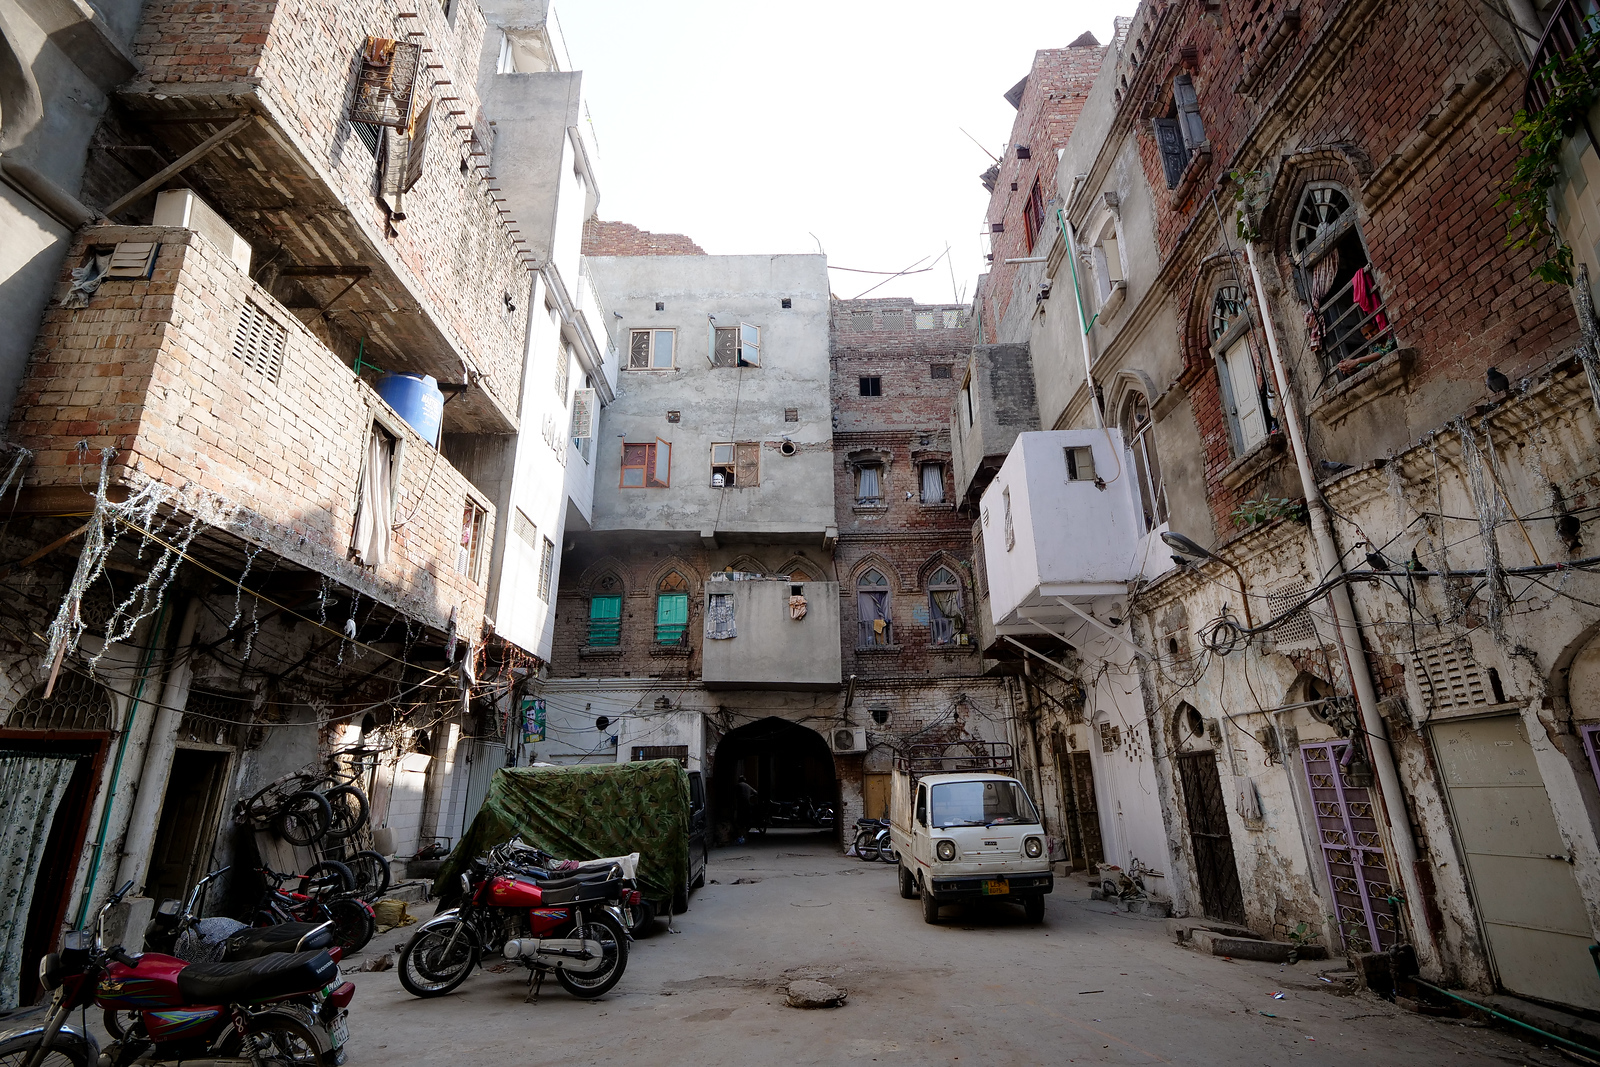 Gawalmandi area is just full of relics like this, a view of an older Lahore.